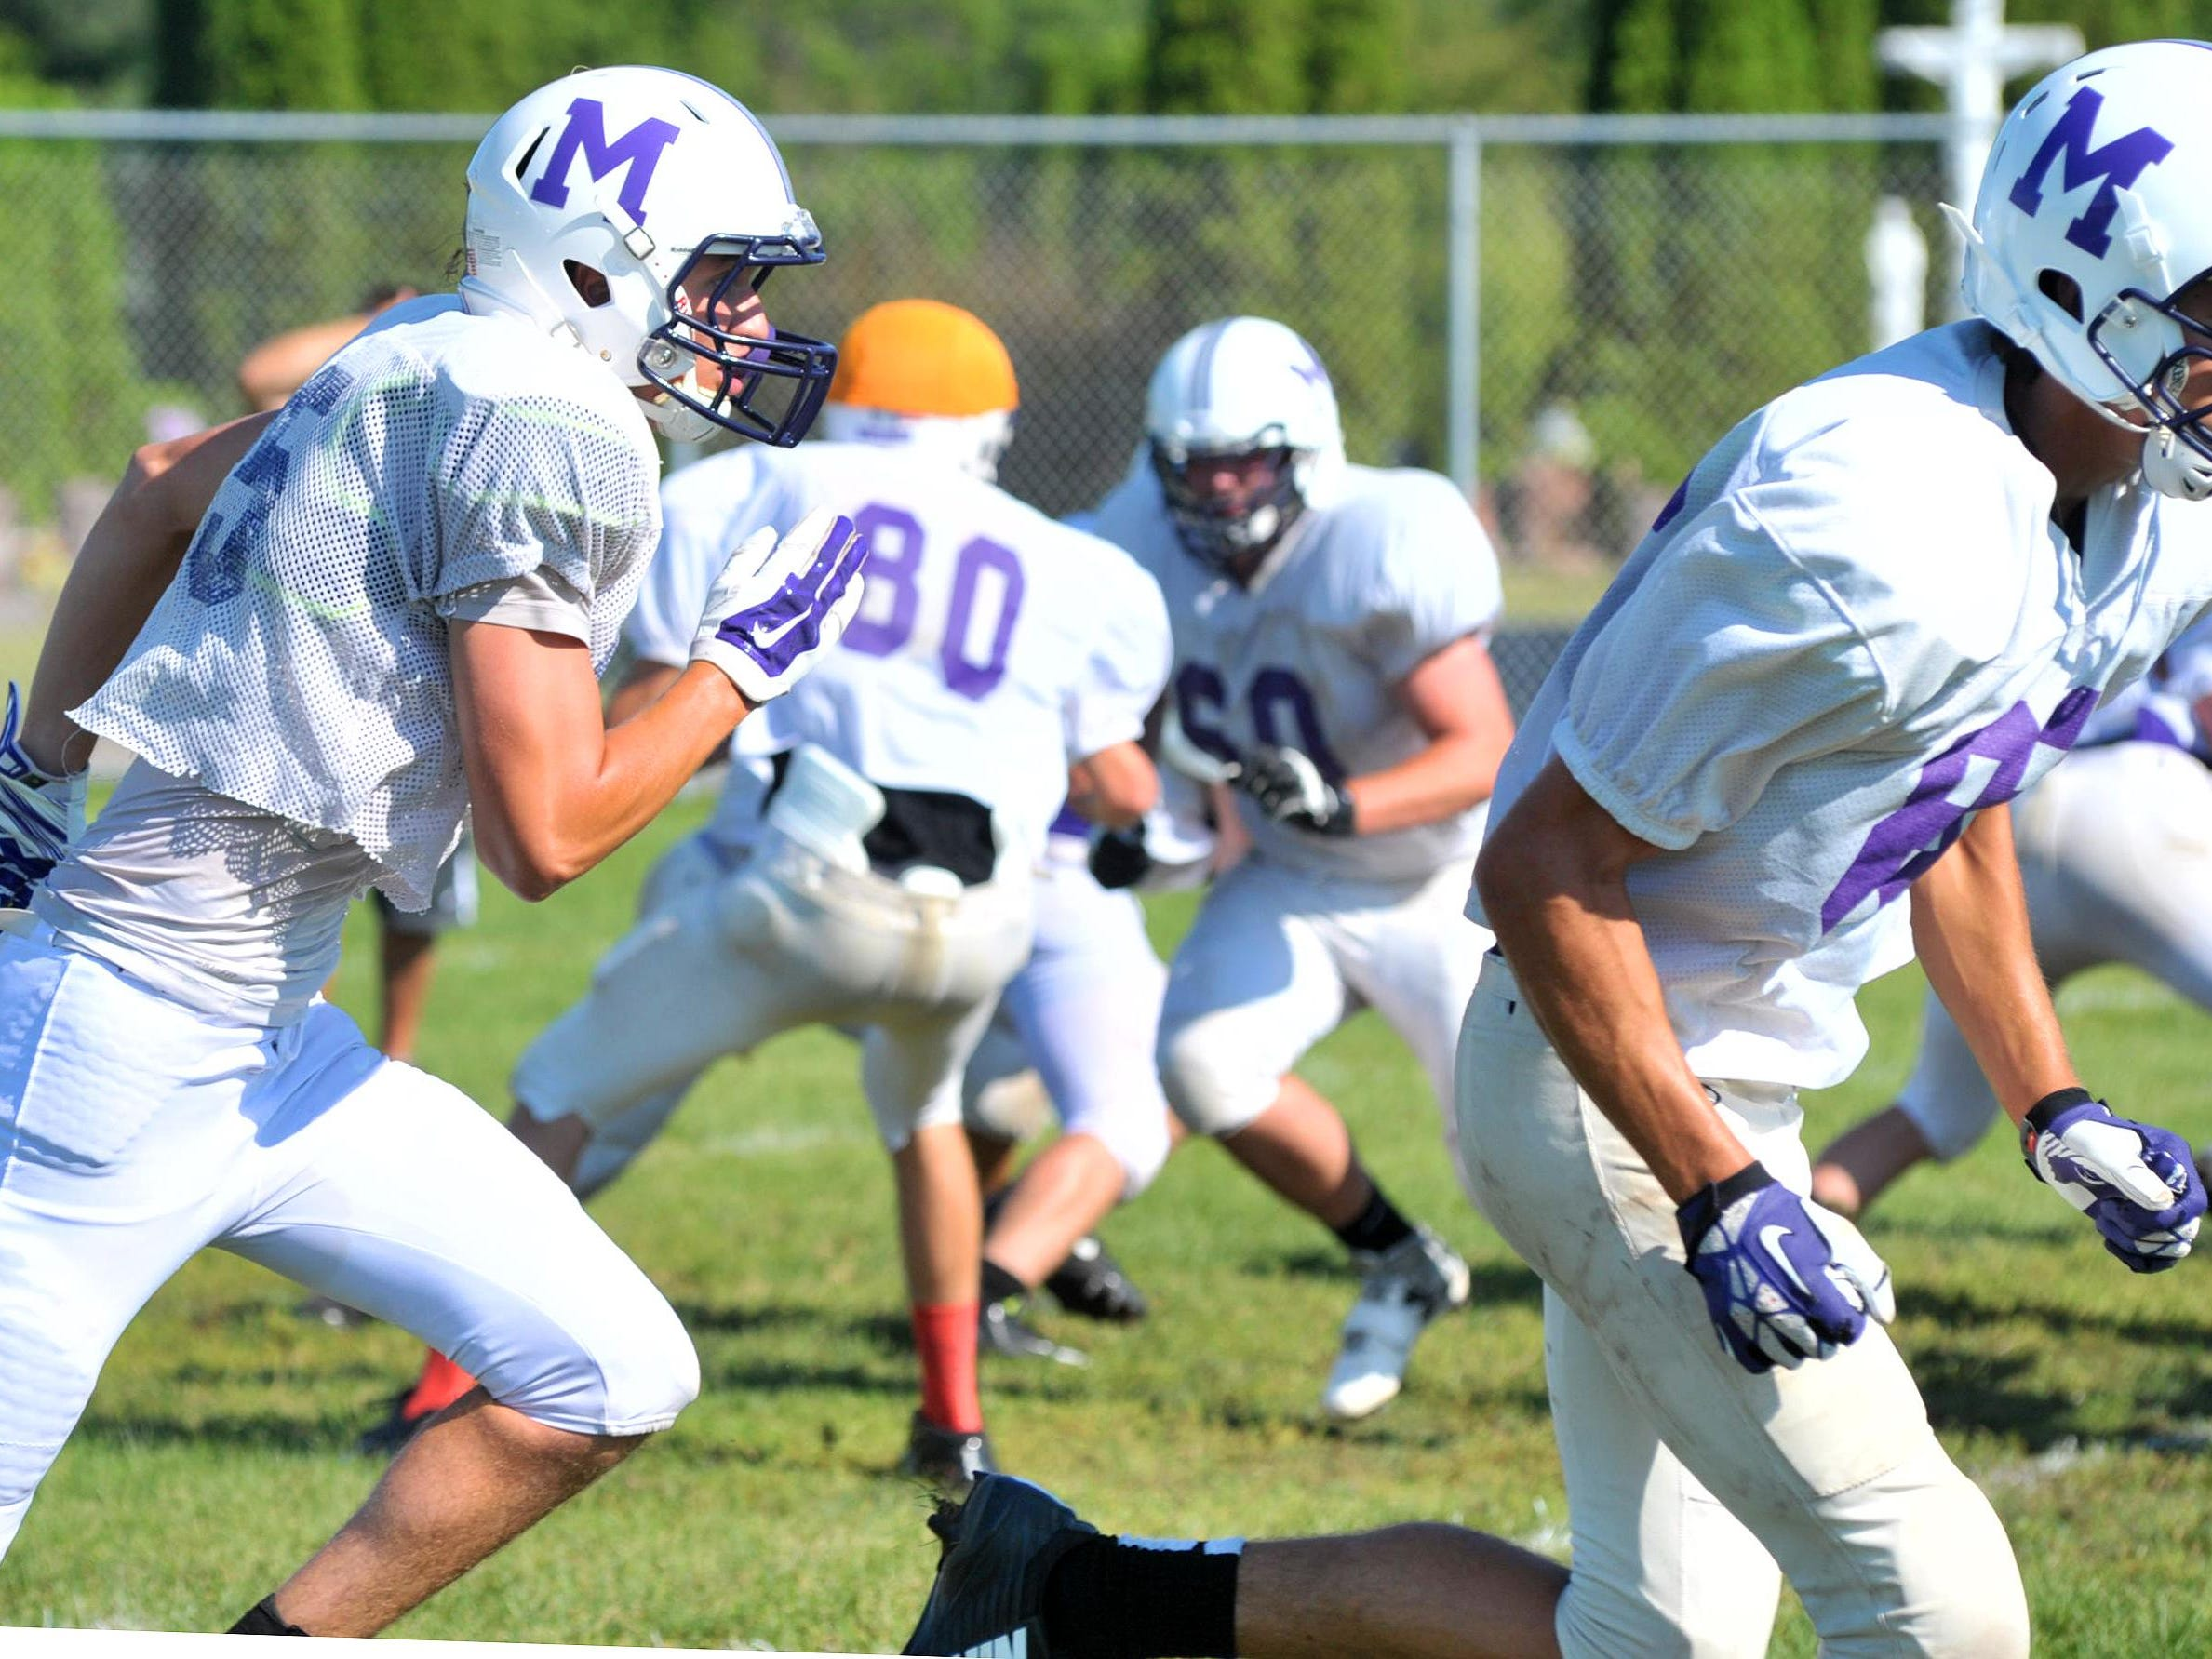 Mosinee's football team works on drill during Monday's practice at Mosinee High School football field.